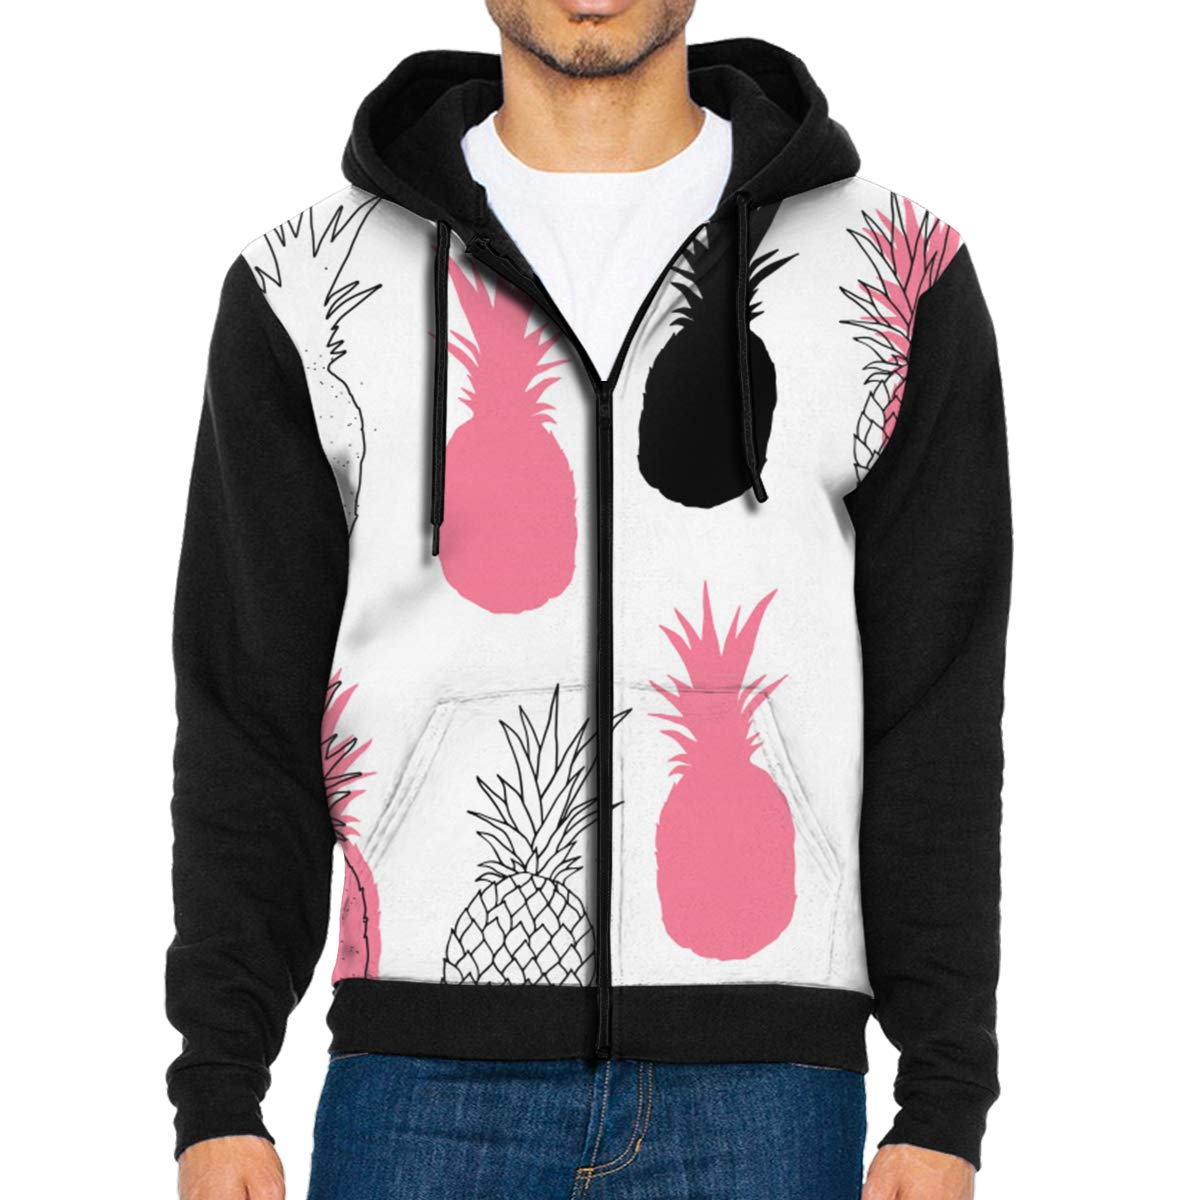 MHBGMYES Black Pink White Abstract Pineapples Lightweight Mans Jacket with Hood Long Sleeved Zippered Outwear